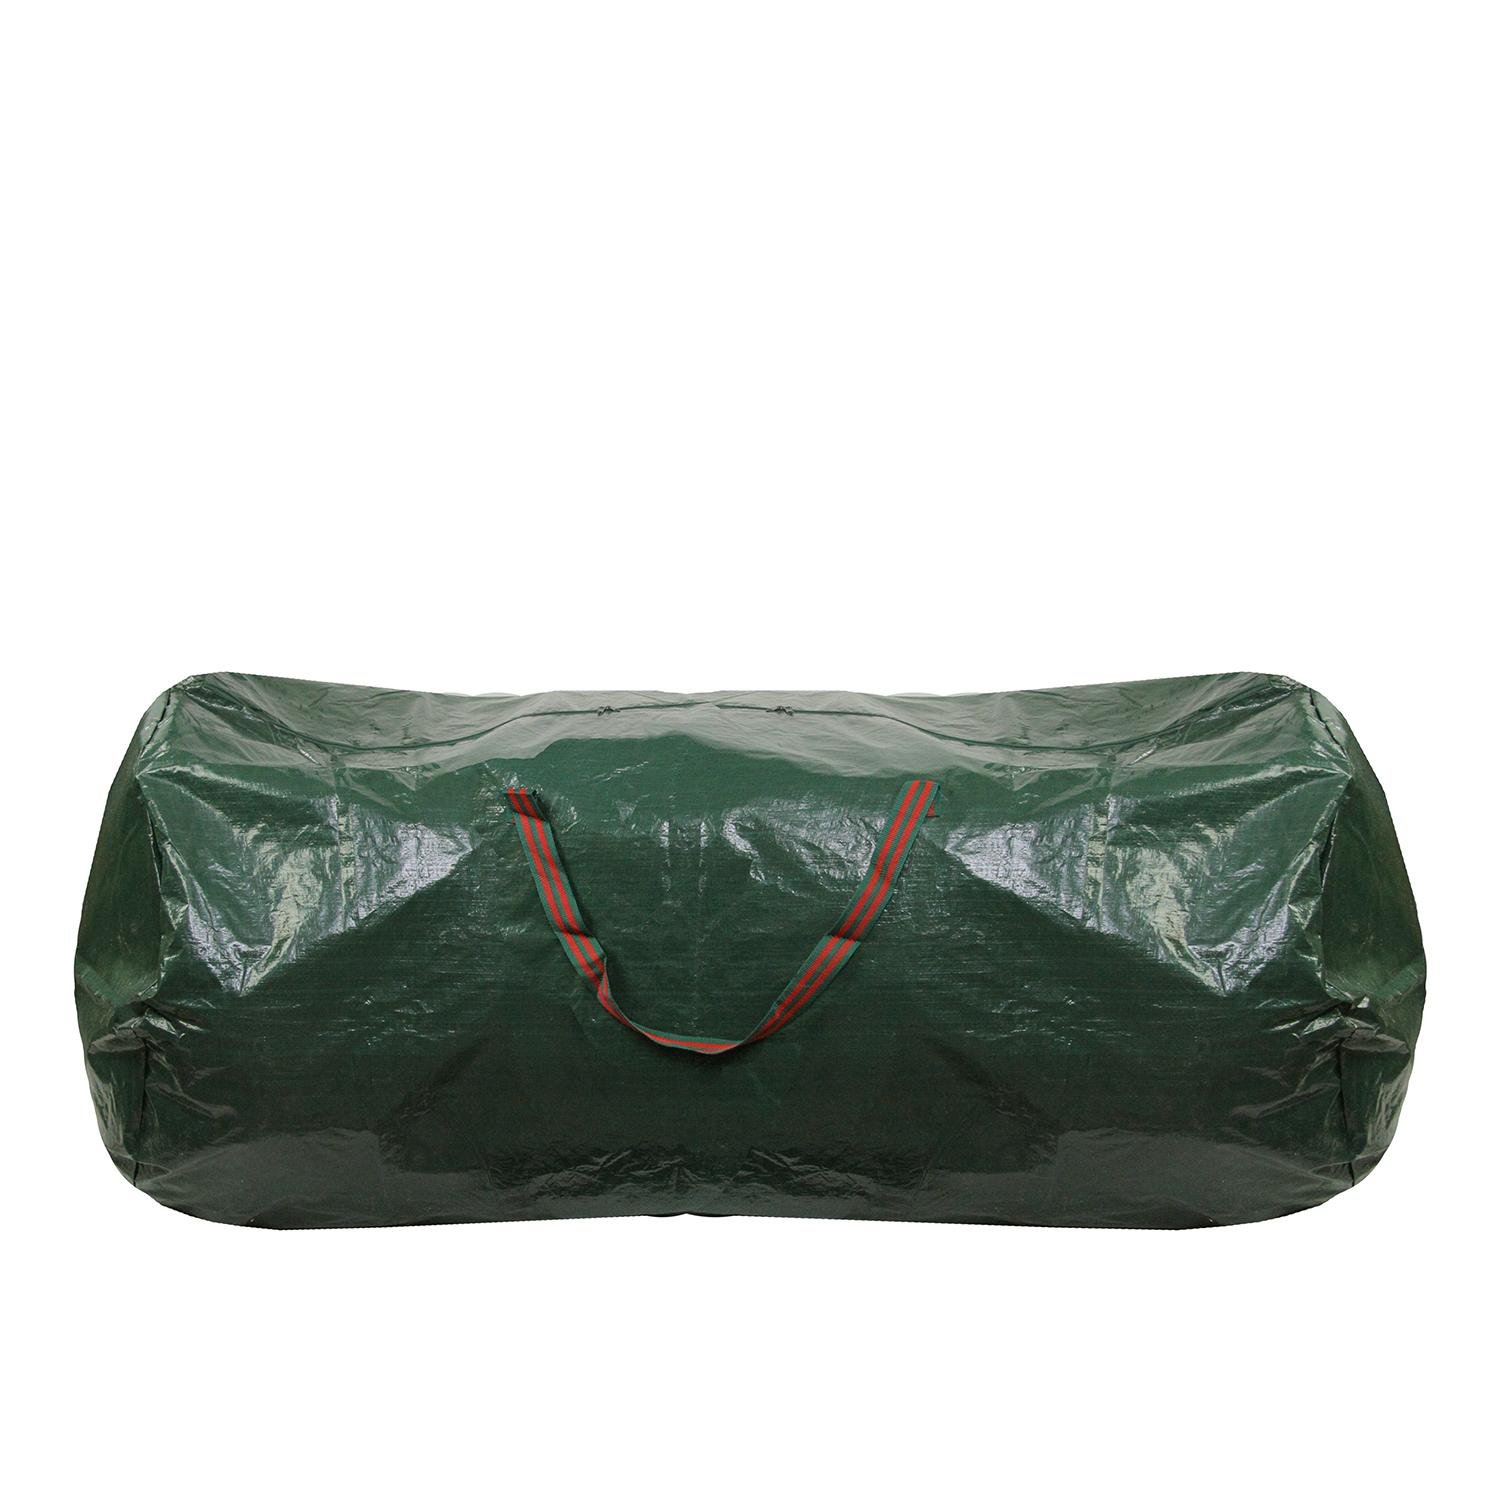 Artificial Christmas Tree Storage Bag - Fits Up To A 9' Tree - image 1 of 2